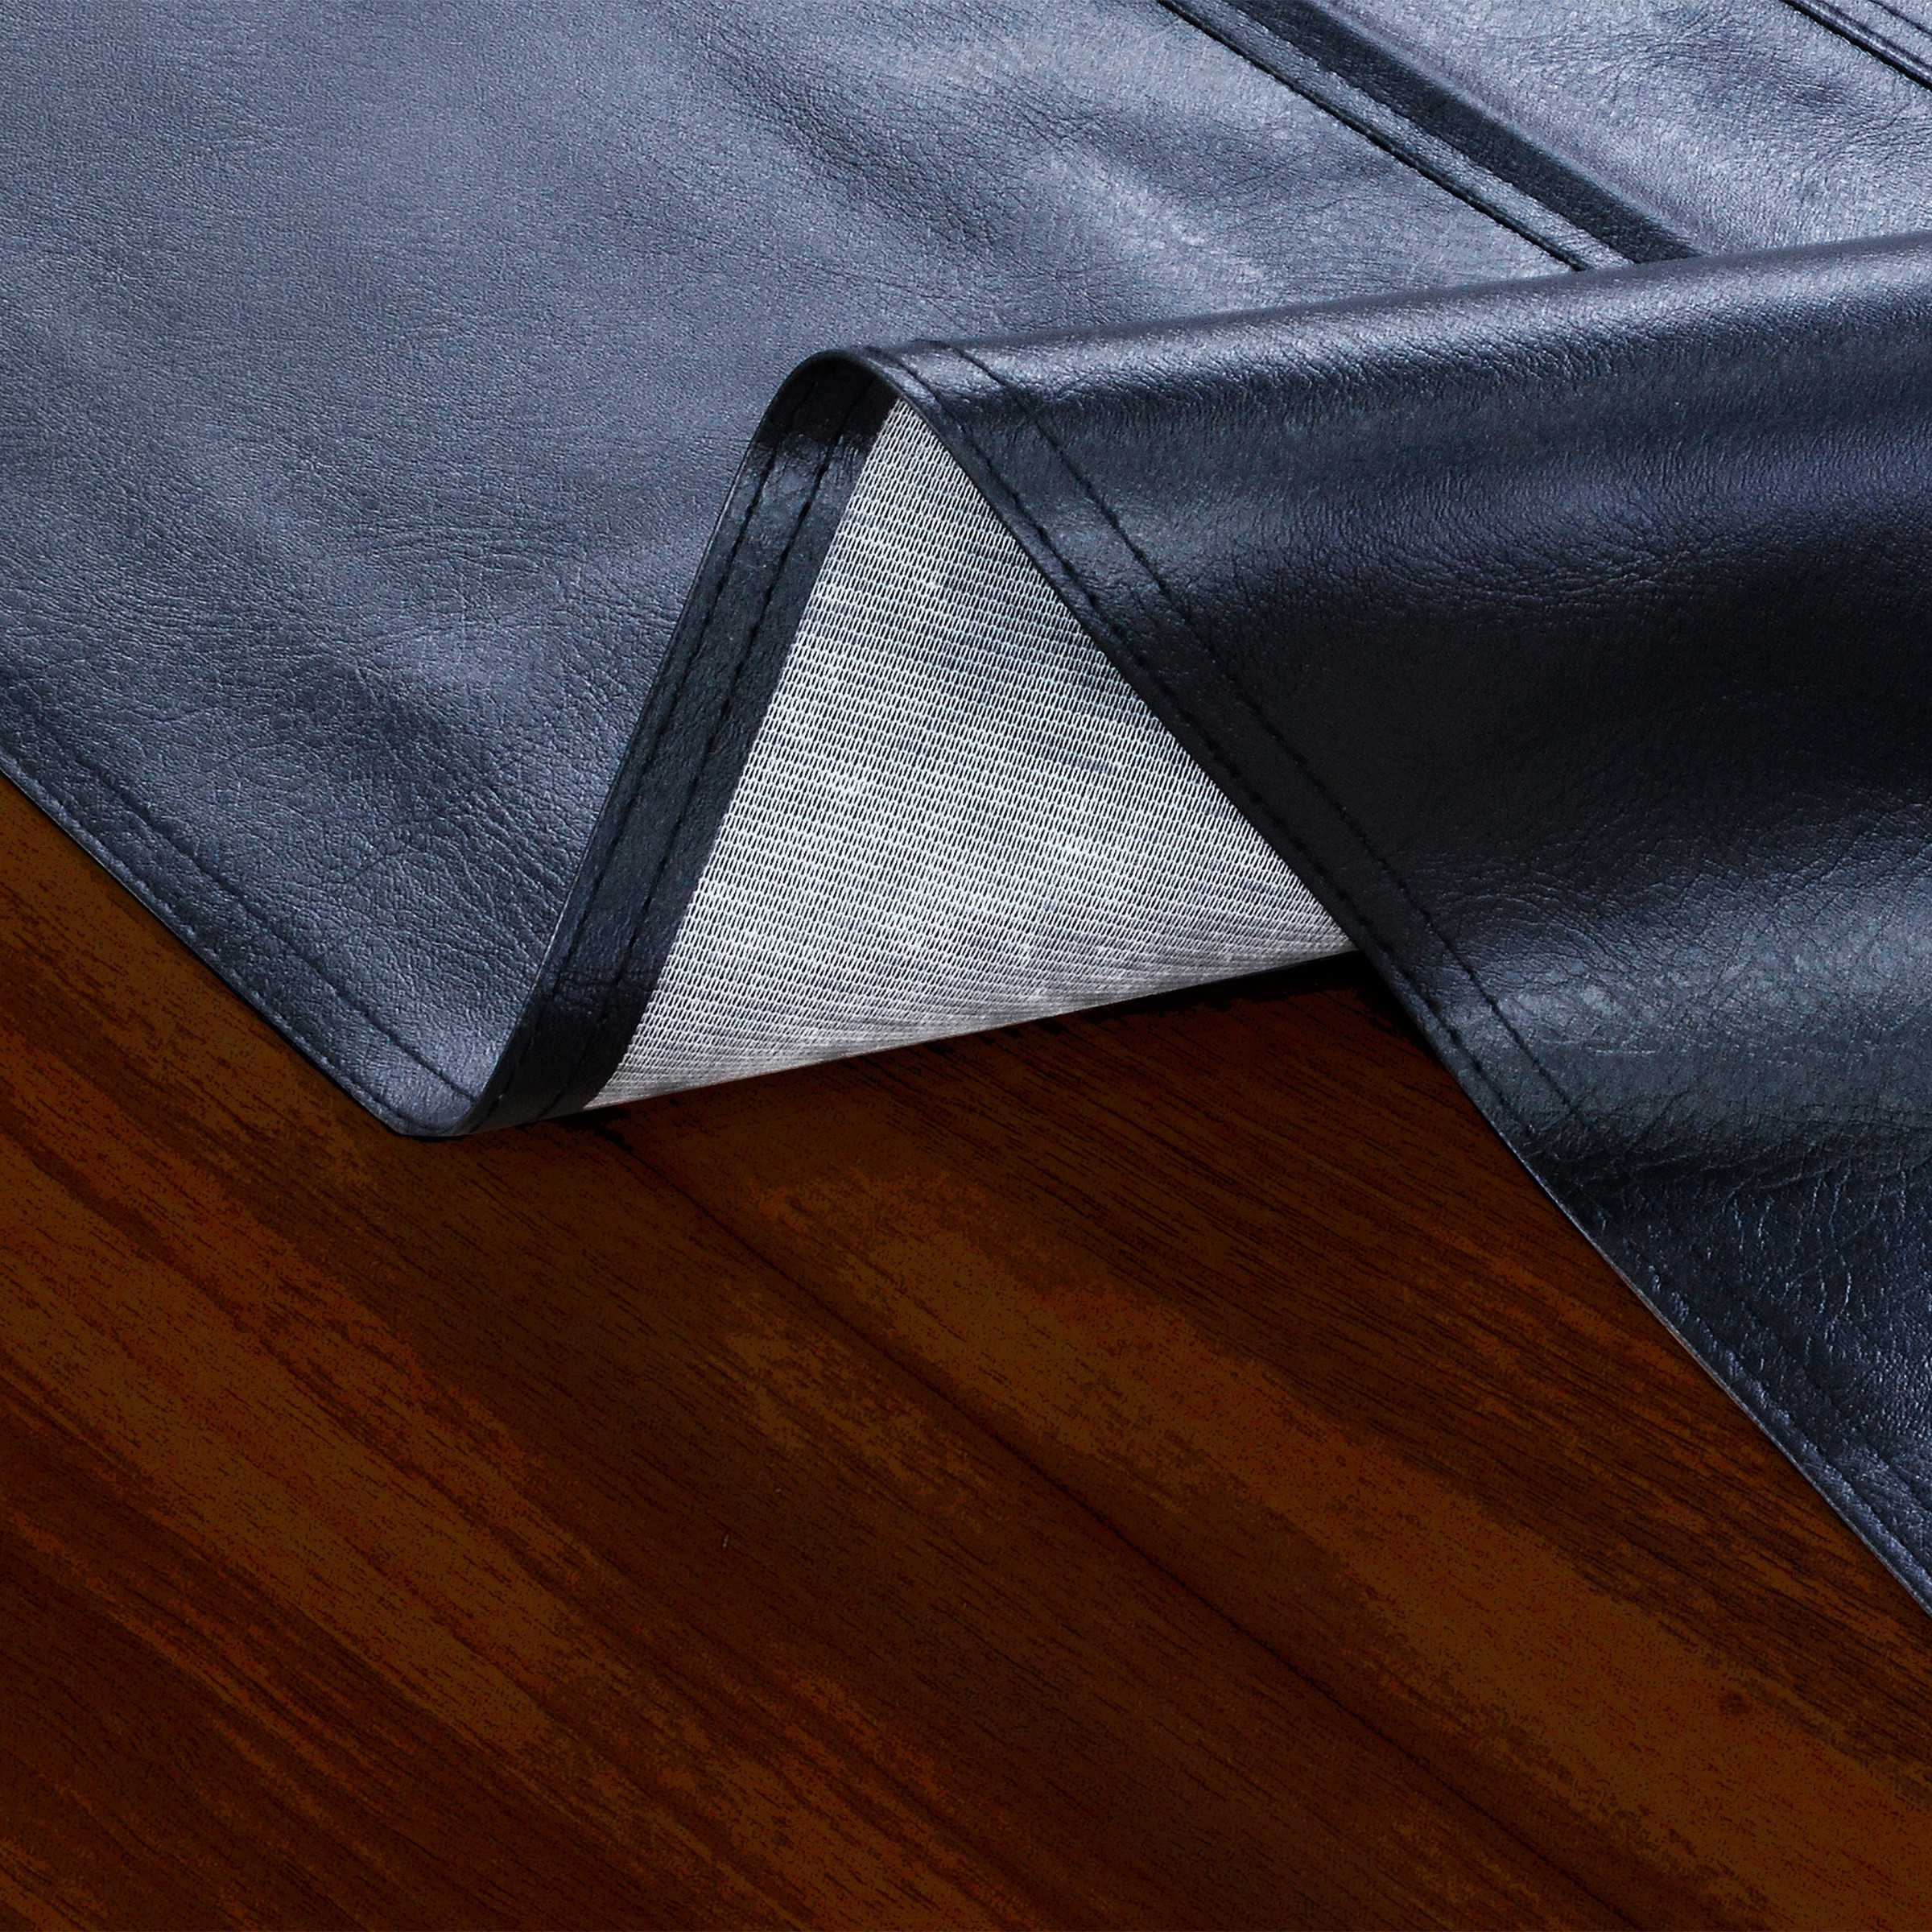 NEW YORK YANKEE 8' DELUXE POOL TABLE COVER